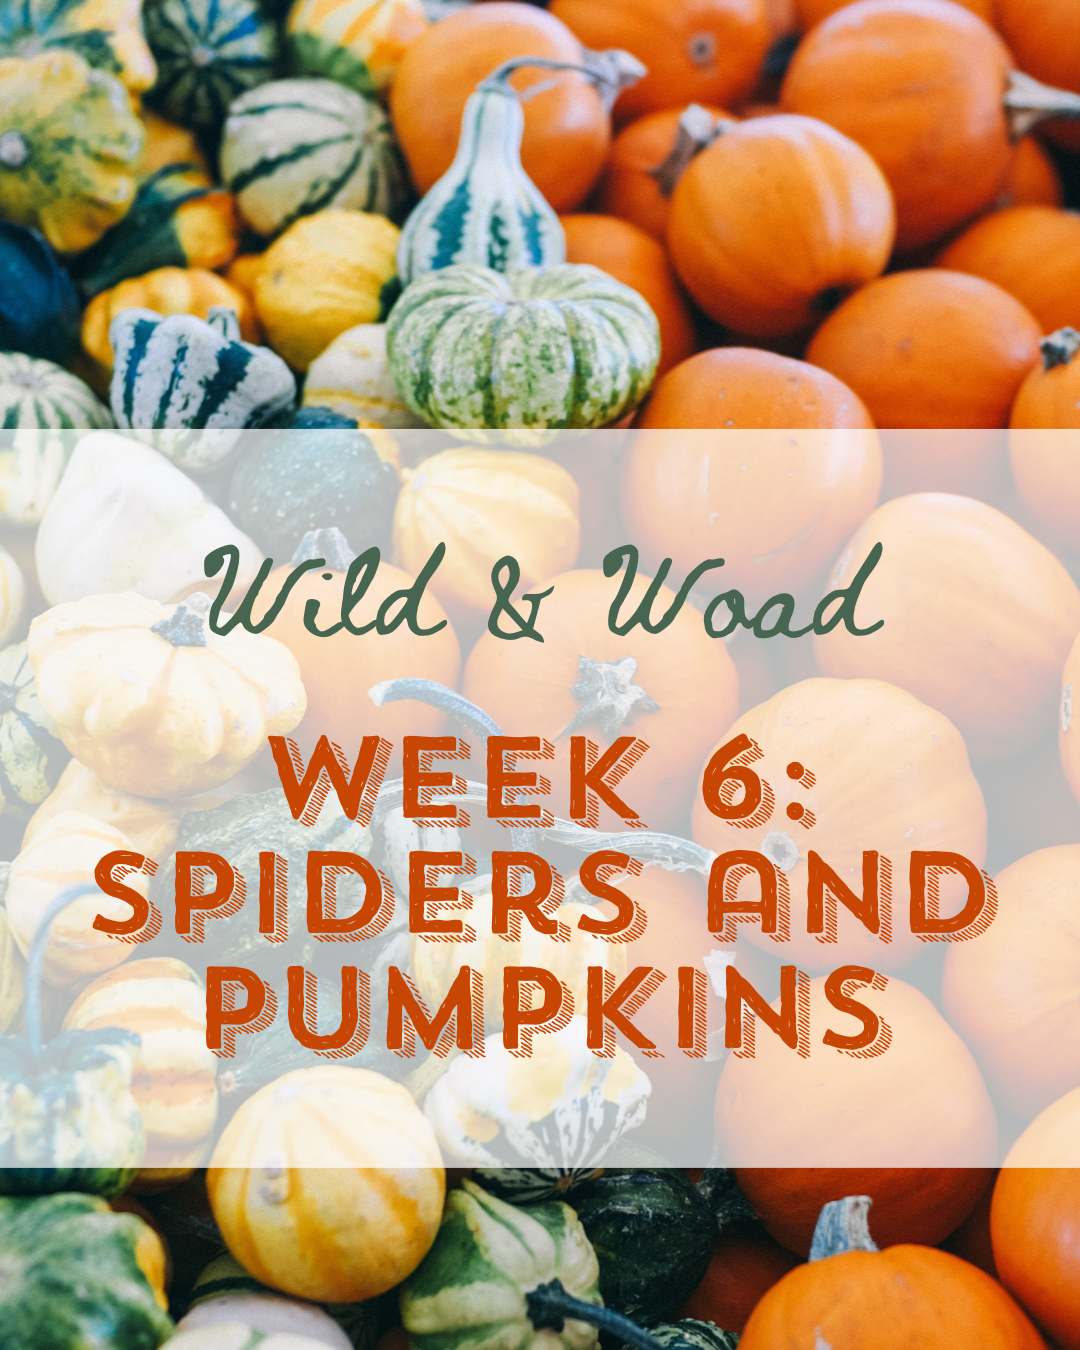 Week 6: Spiders and Pumpkins